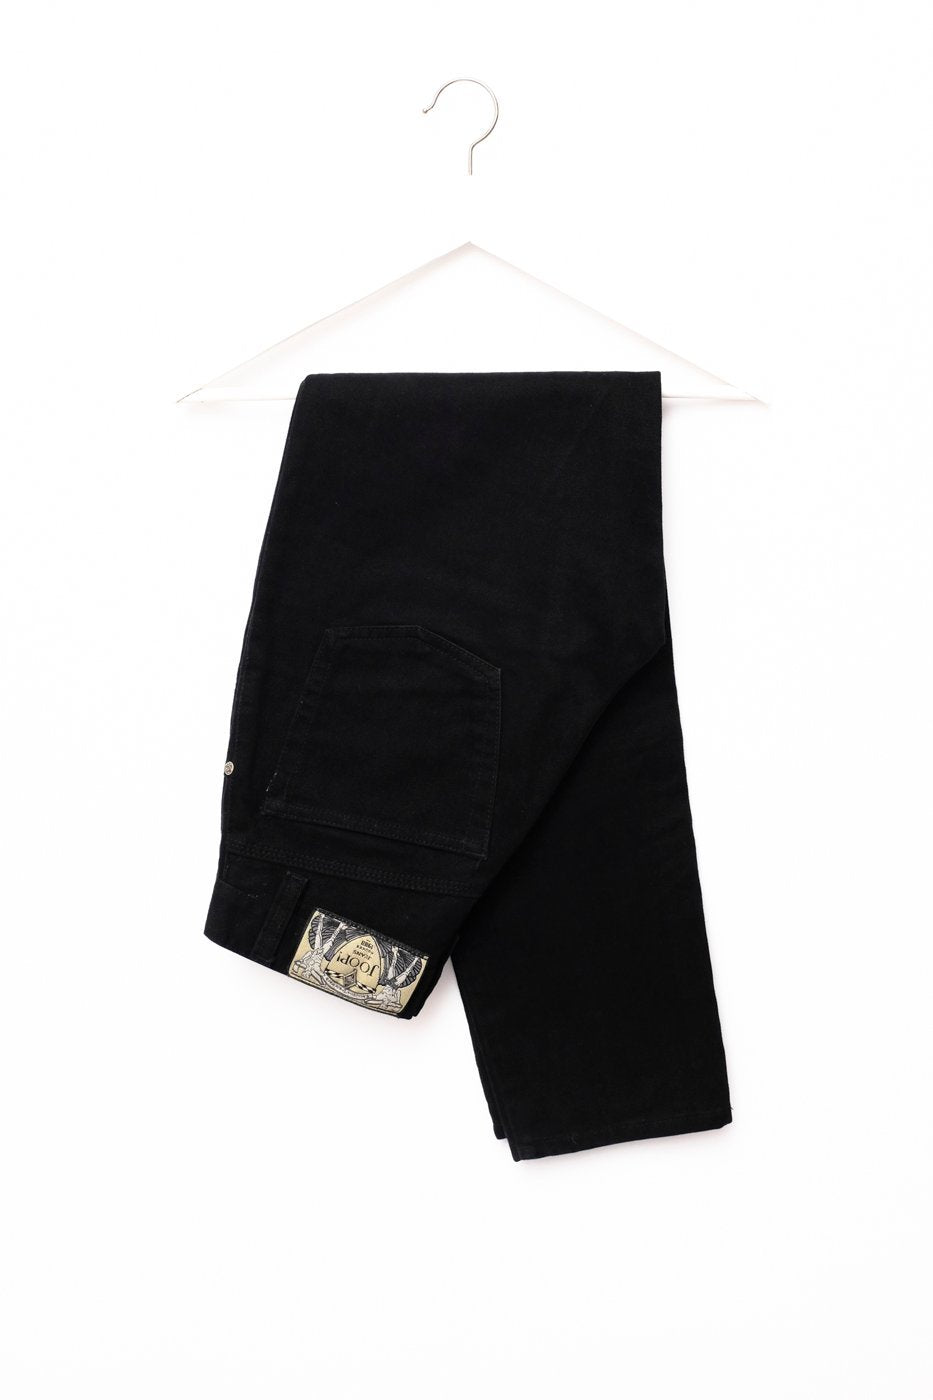 0479_JOOP! BLACK HIGH WAIST CARROT JEANS